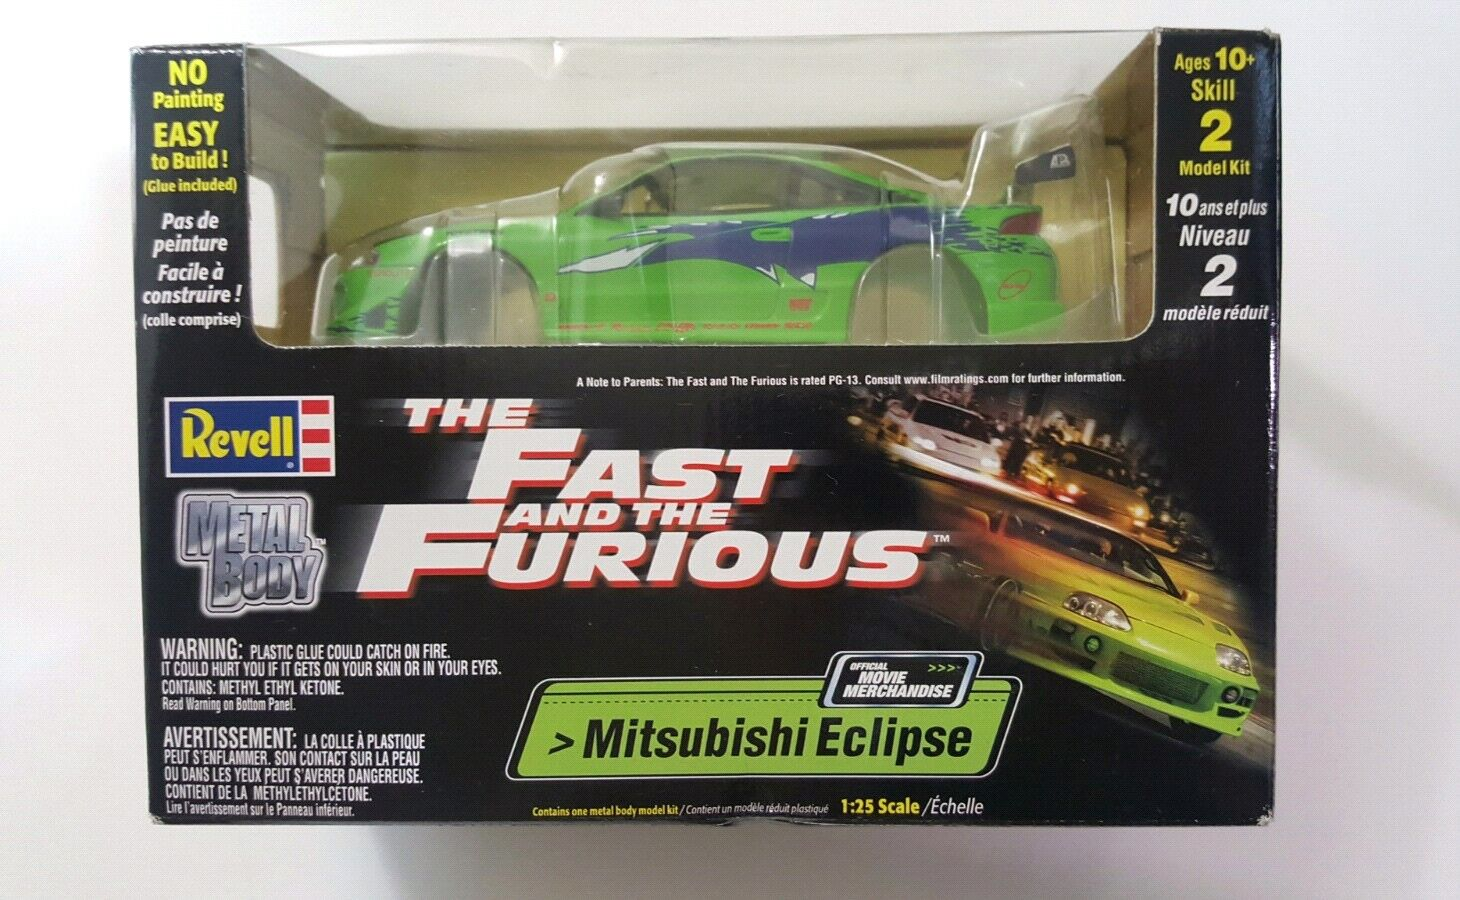 Rare Fast and the Furious Eclipse Diecast Build Kit from Original 1st Movie